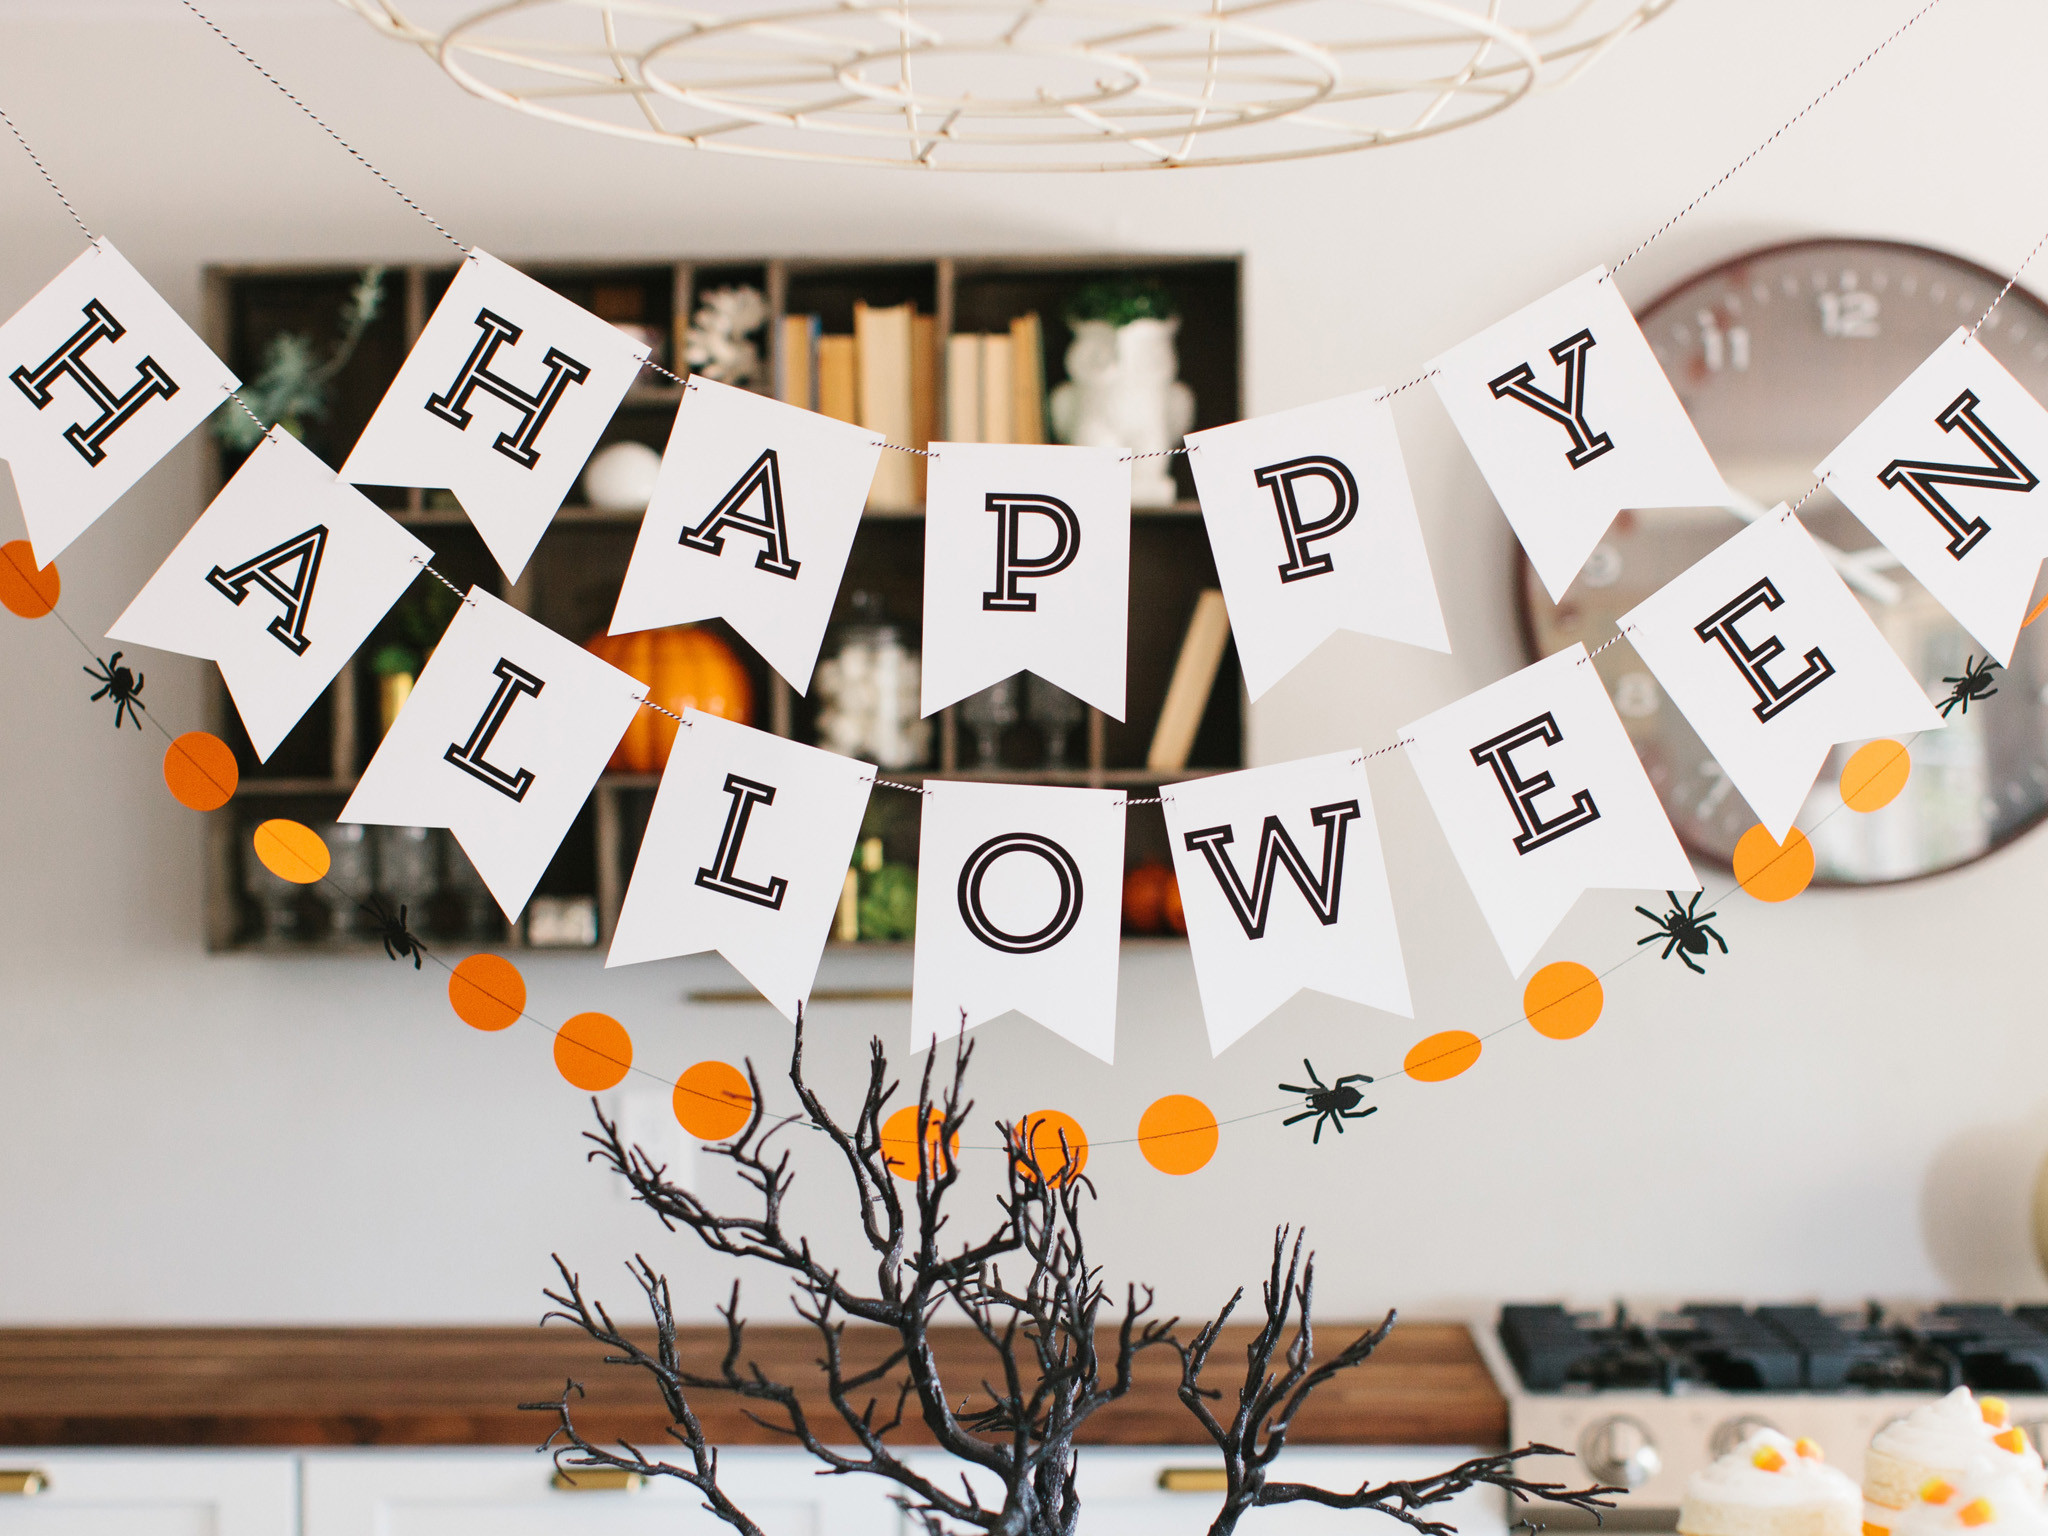 Diy Halloween Party Ideas  11 Awesome And Spooky Halloween Party Ideas Awesome 11